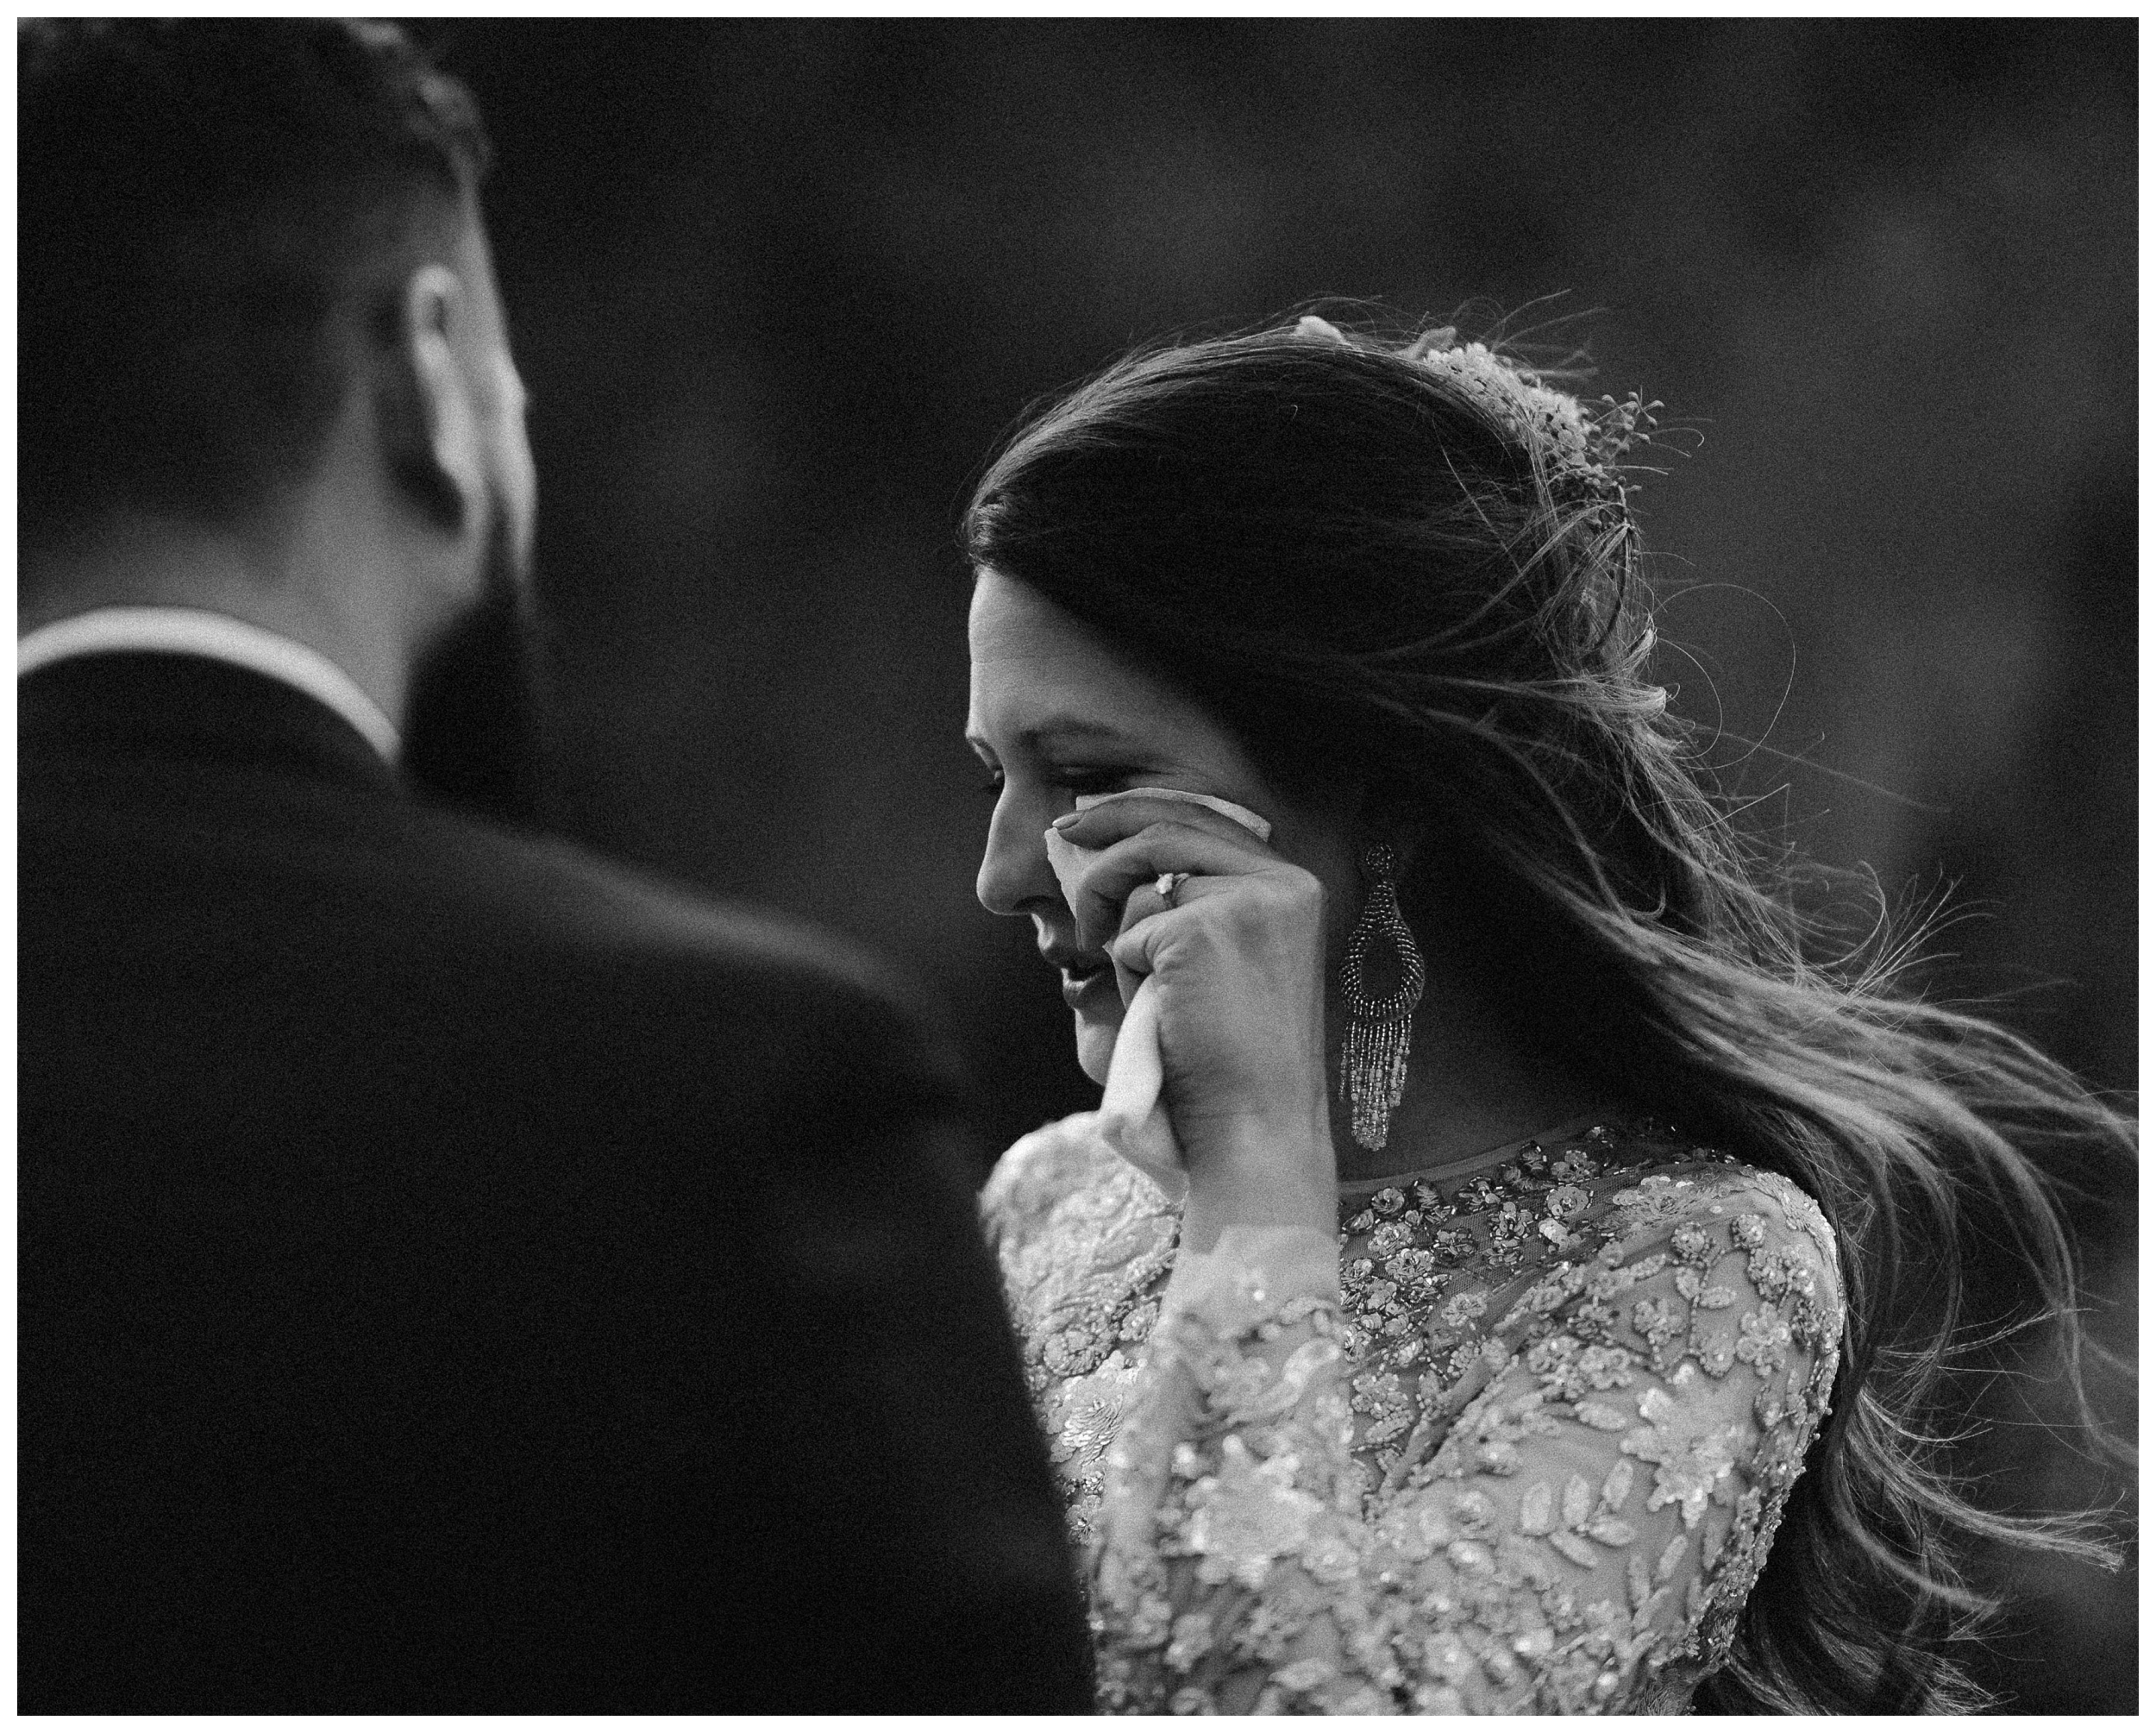 Rangefinder-Top-Wedding-Photographers-Adventure-Instead-Maddie-Mae-Destination-Elopement-Photography-Eloping-Photographers_0027.jpg